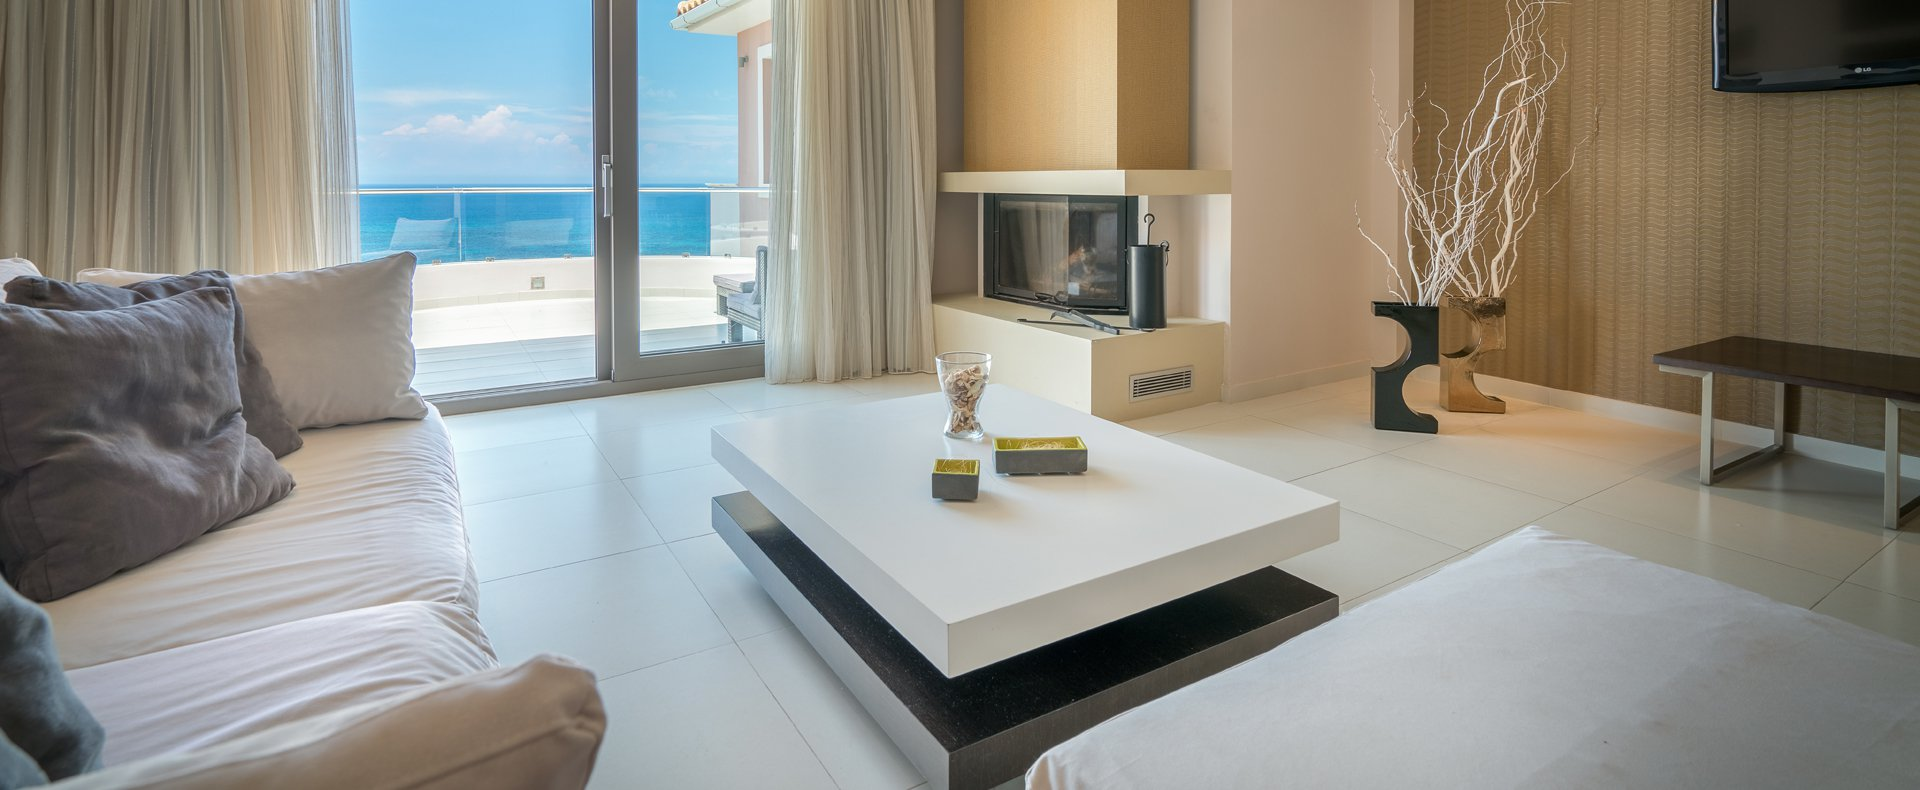 The cozy living room with a sea view that Kymothoe Elite Suites offers in Zakynthos